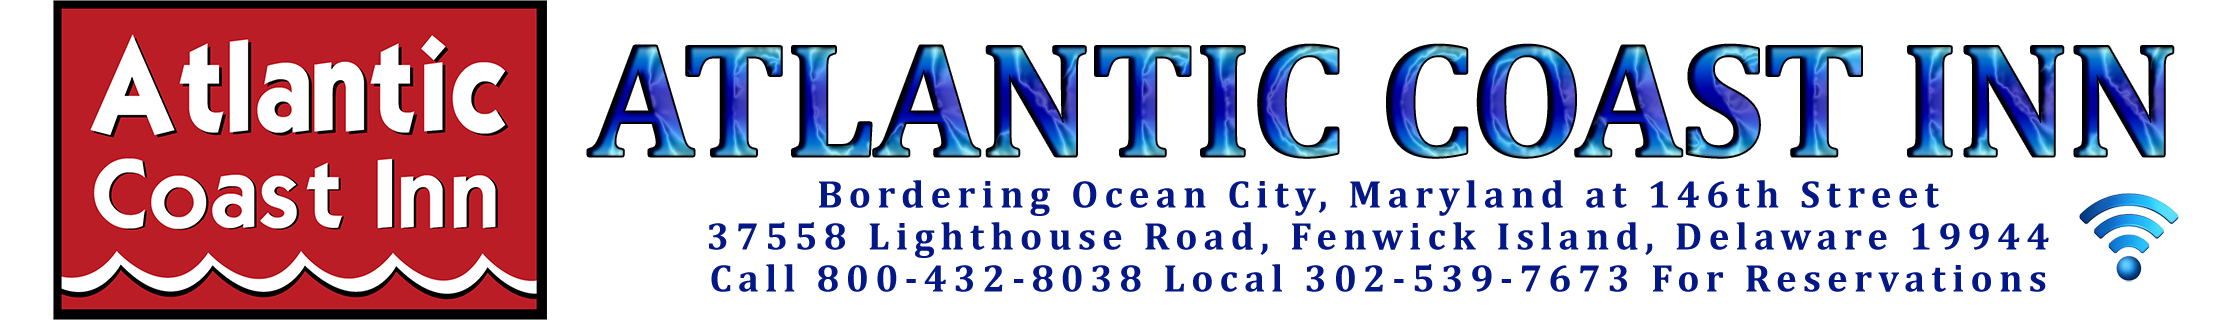 Ocean City Maryland, Fenwick Island Delaware Hotels, Motels